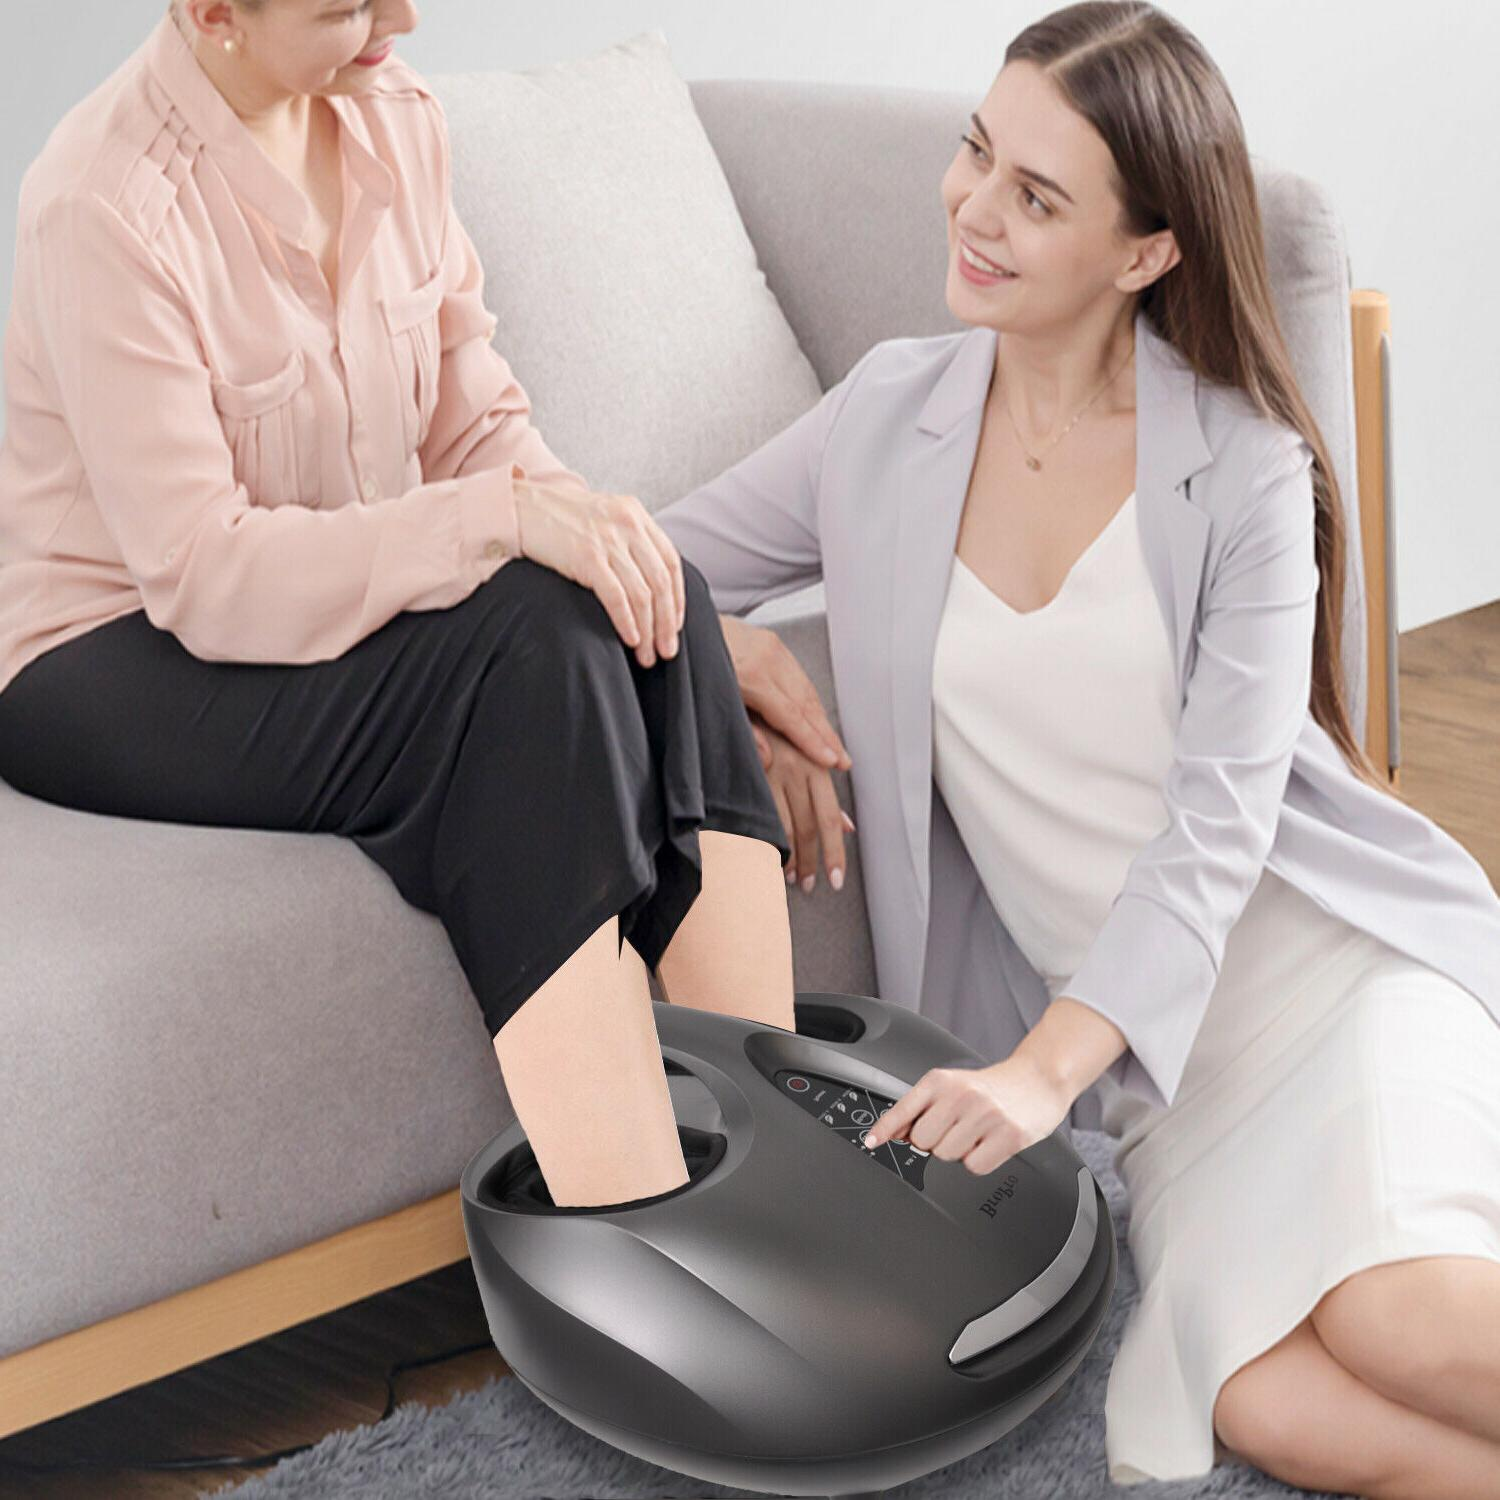 ProBro Kneading Heat and Rolling Massager